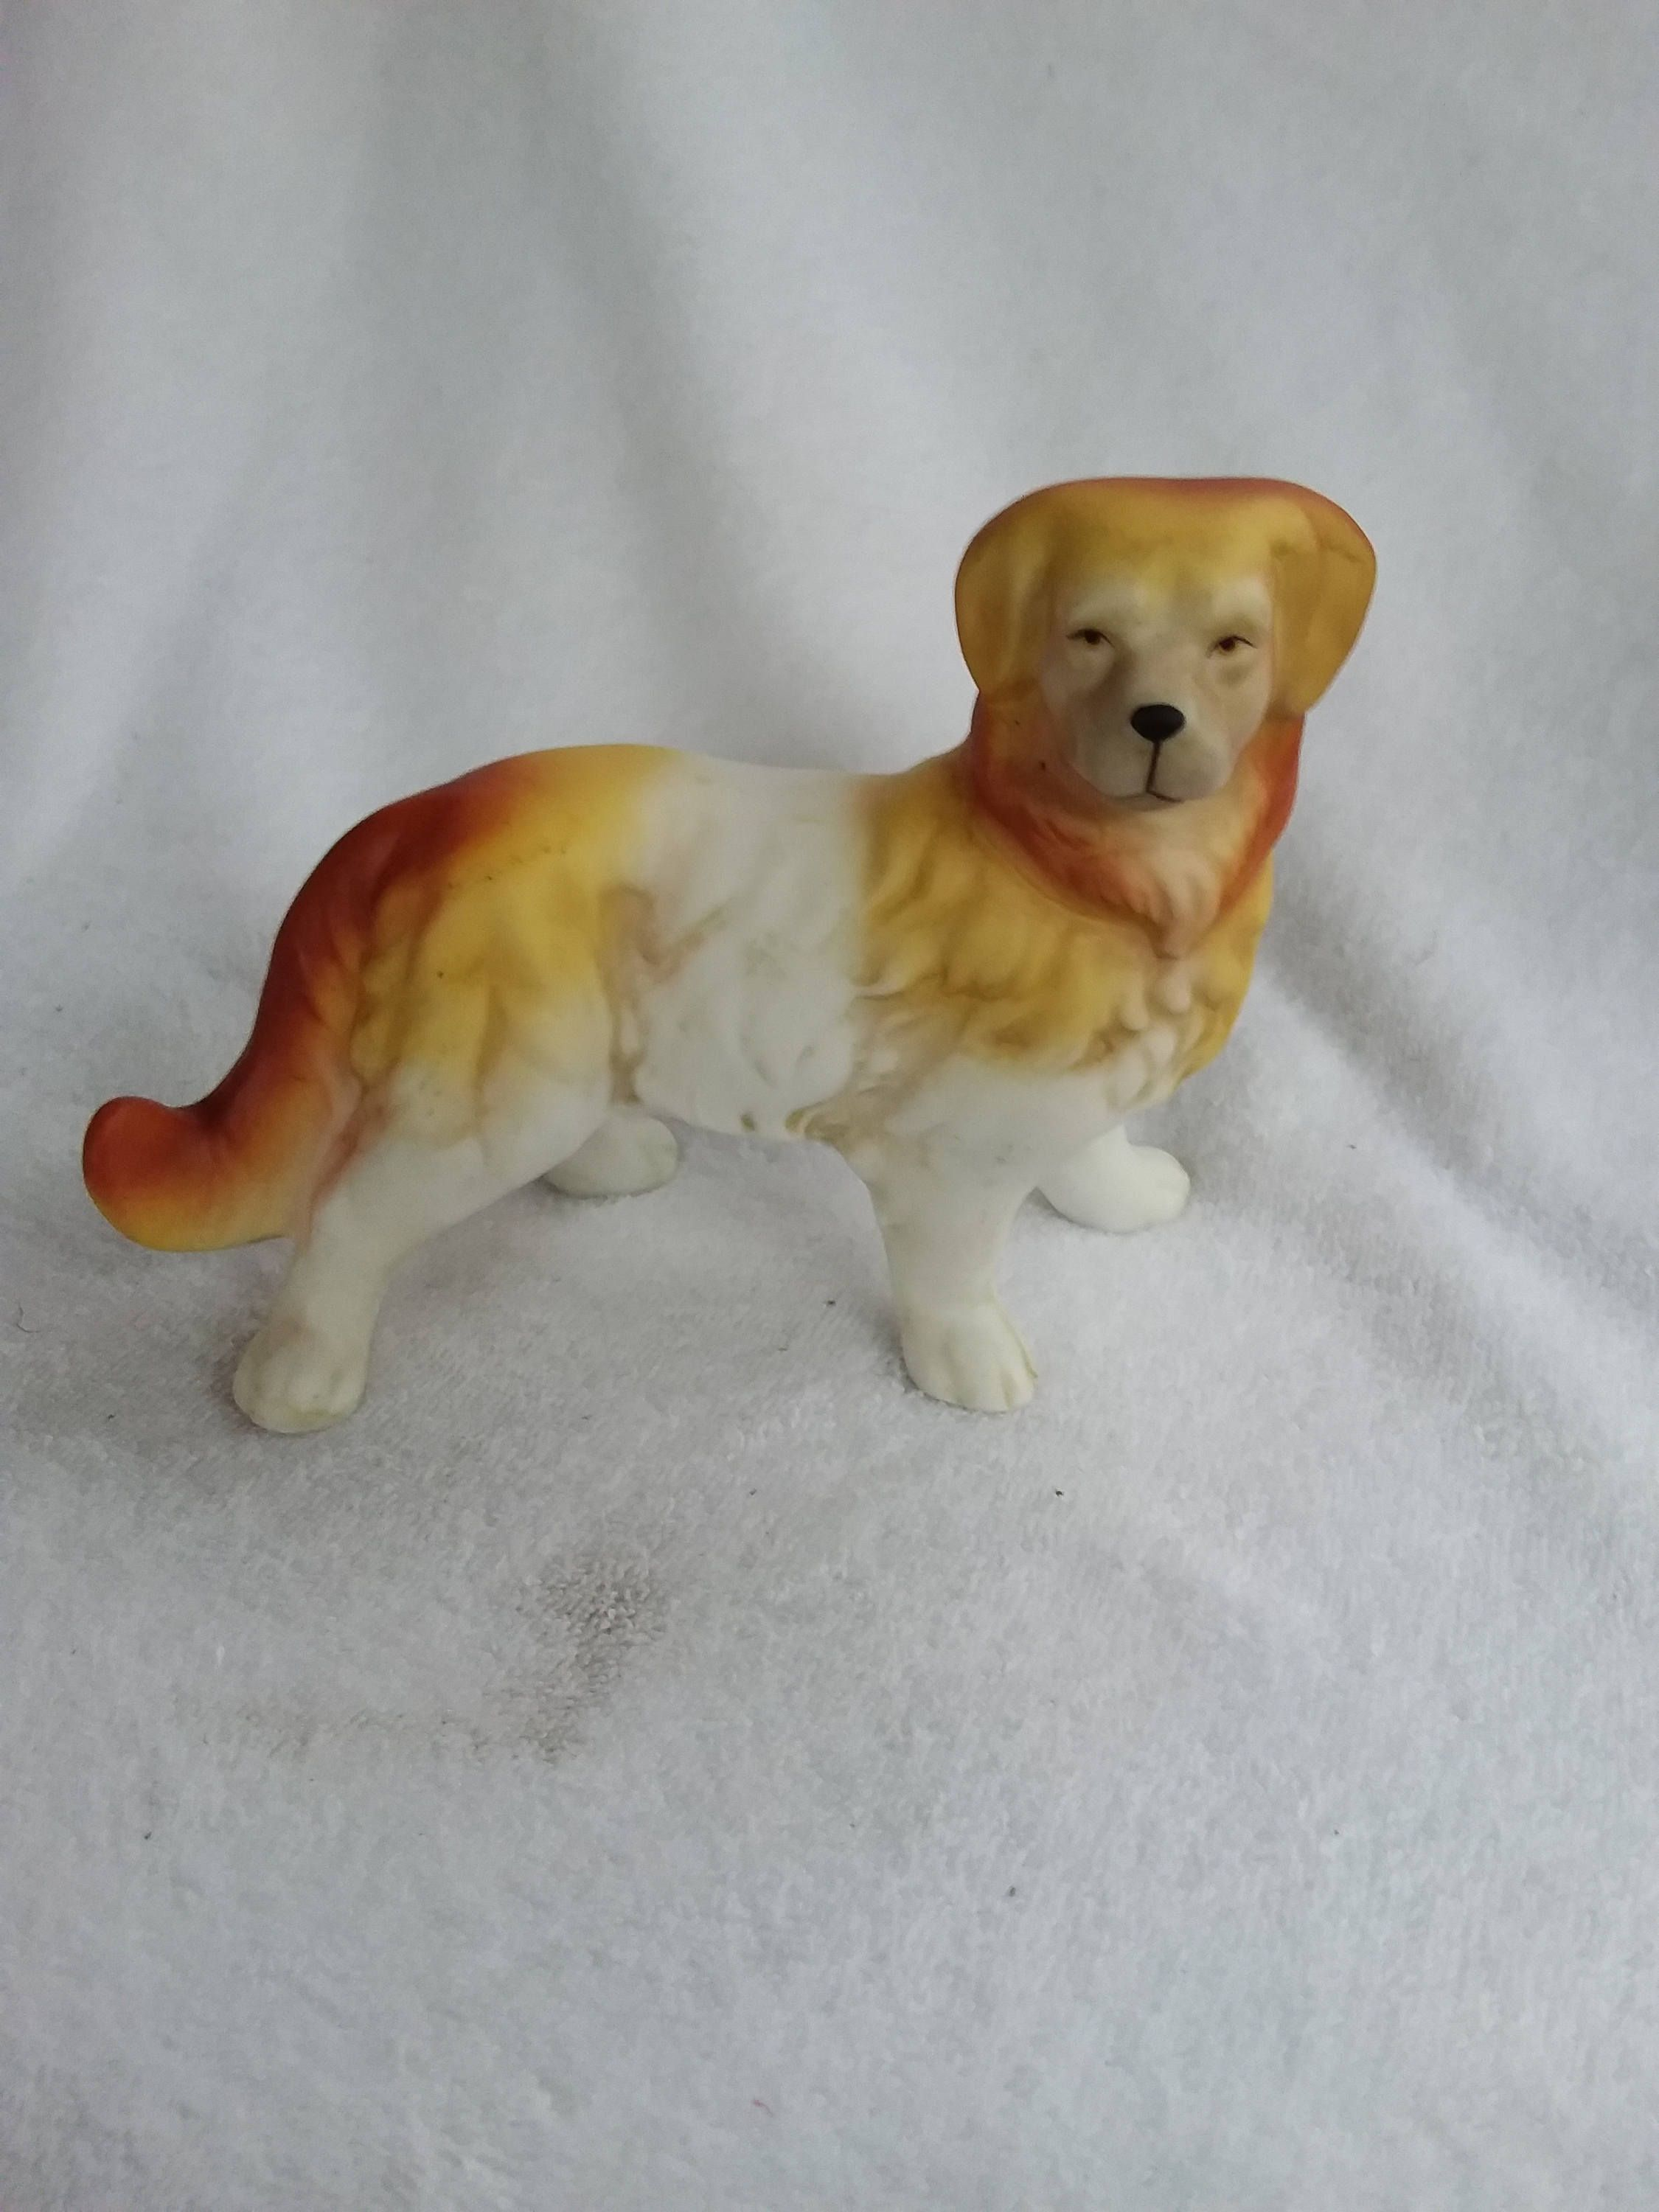 Vintage Golden Retriever Porcelain Golden Retriever Dog Figurine